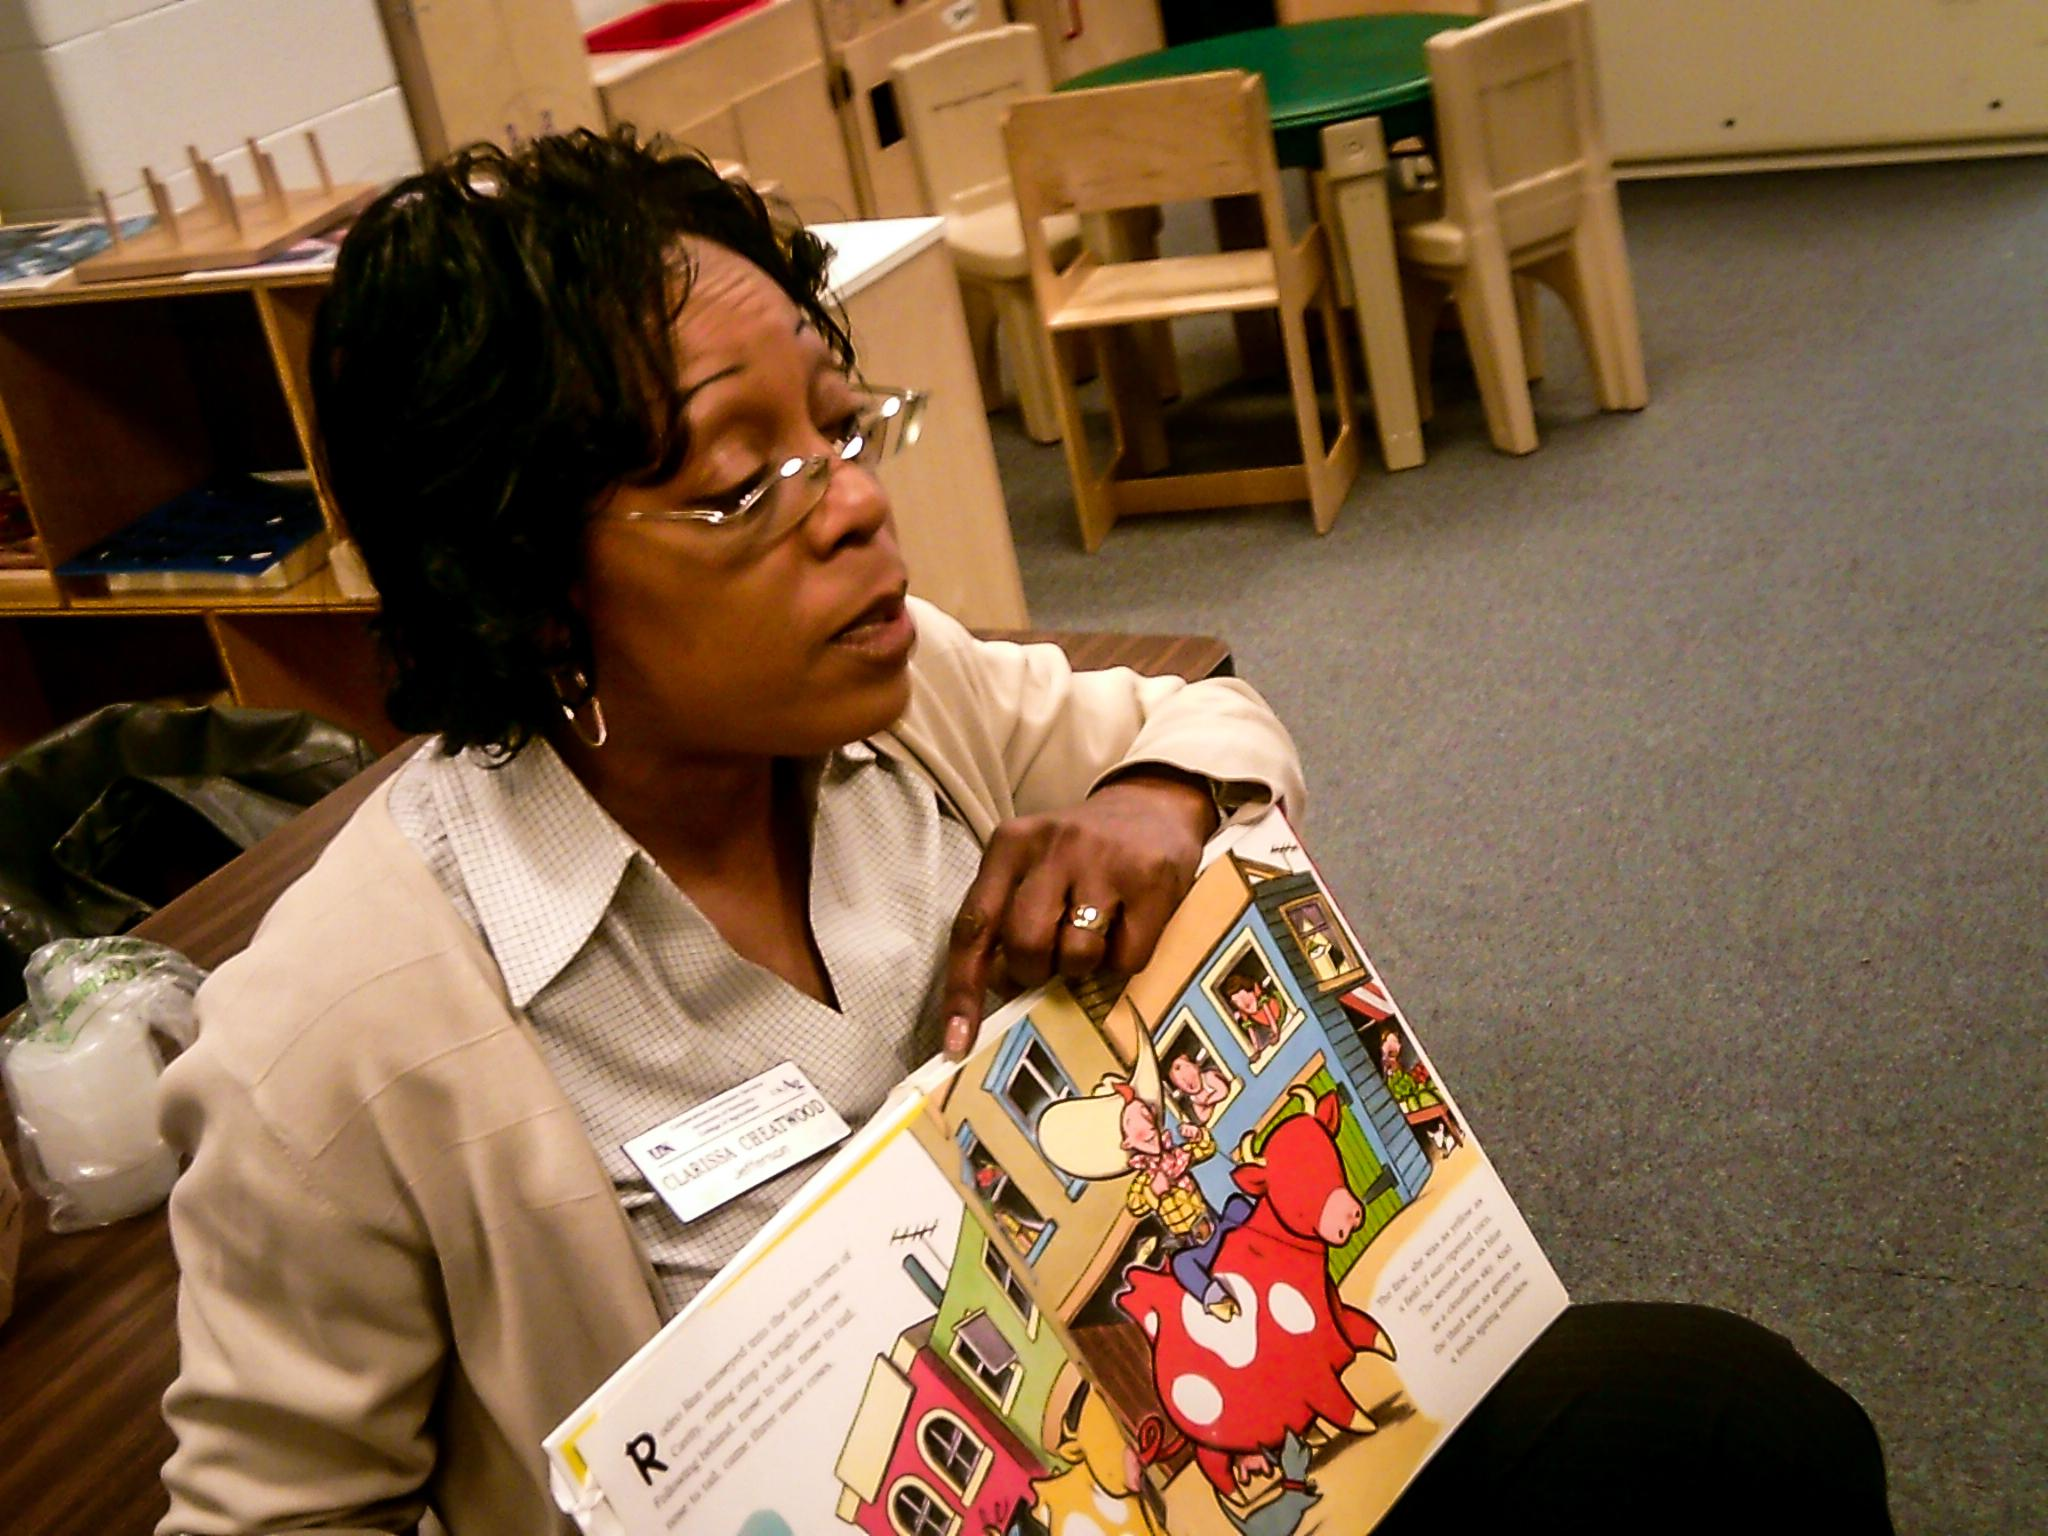 Jefferson County EFNEP assistant Clarissa Cheatwood reads to student at McFerran Preparatory Academy.